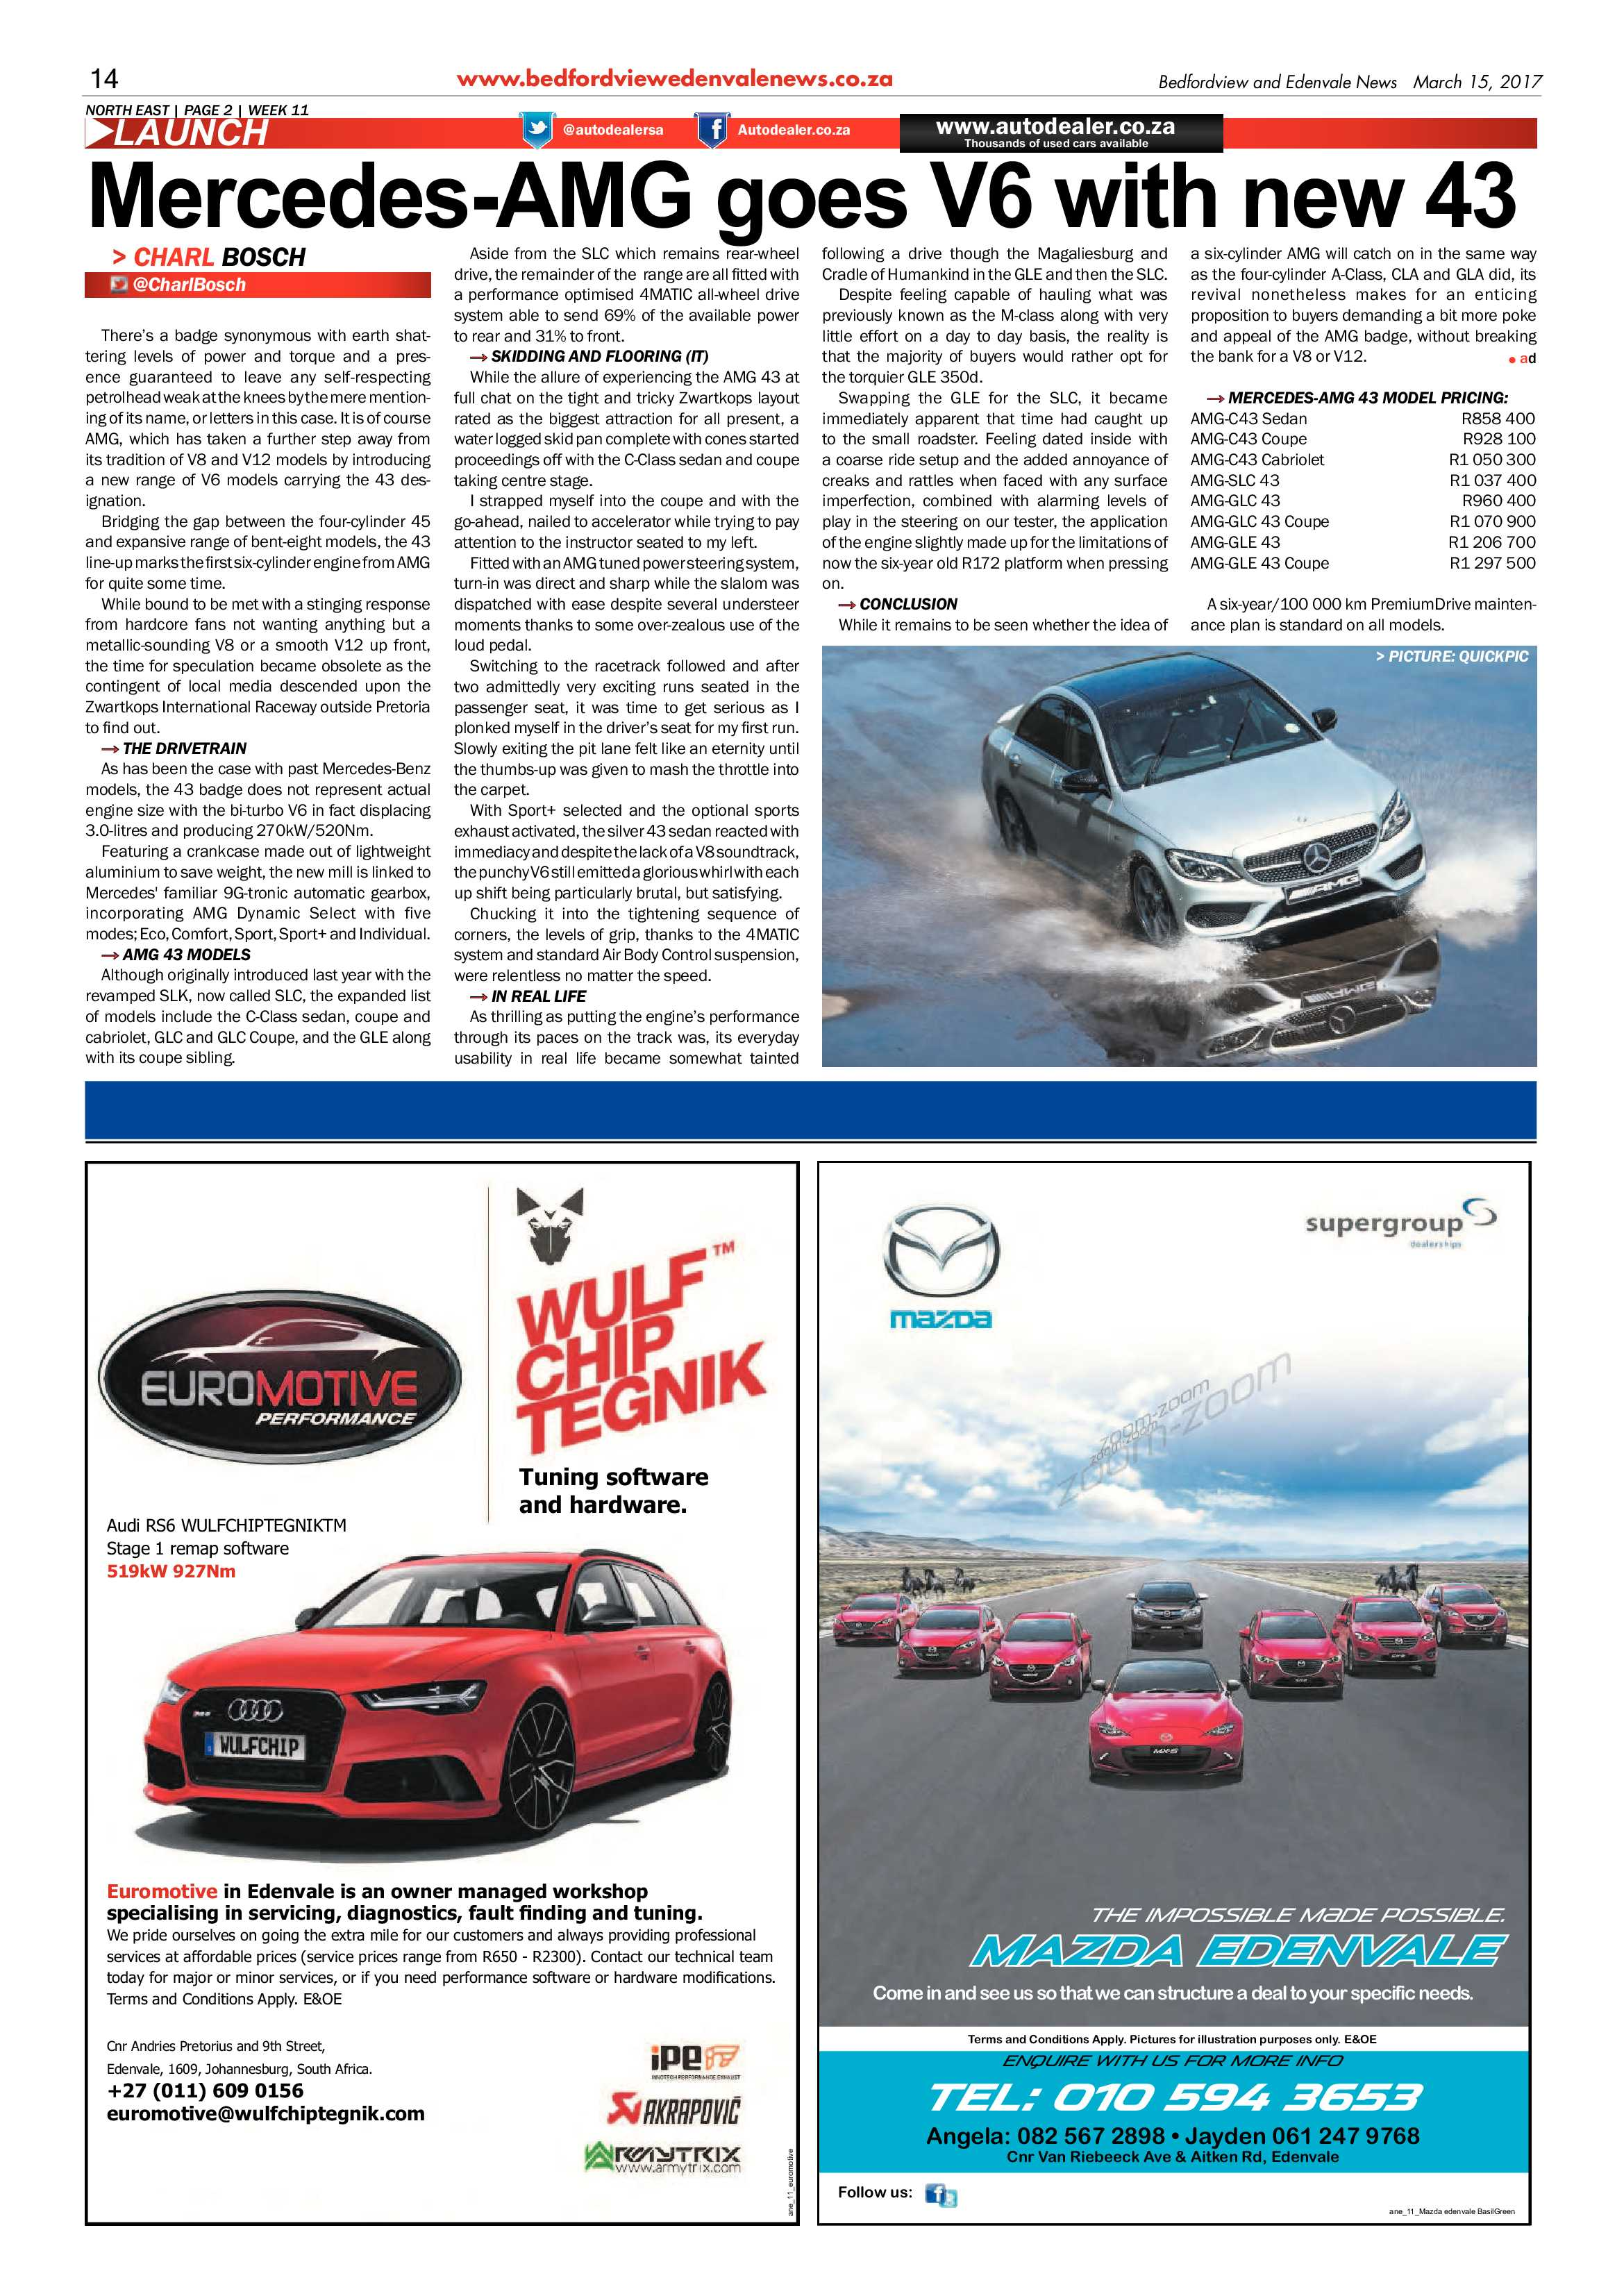 bedfordview-edenvale-news-15-march-2017-epapers-page-14